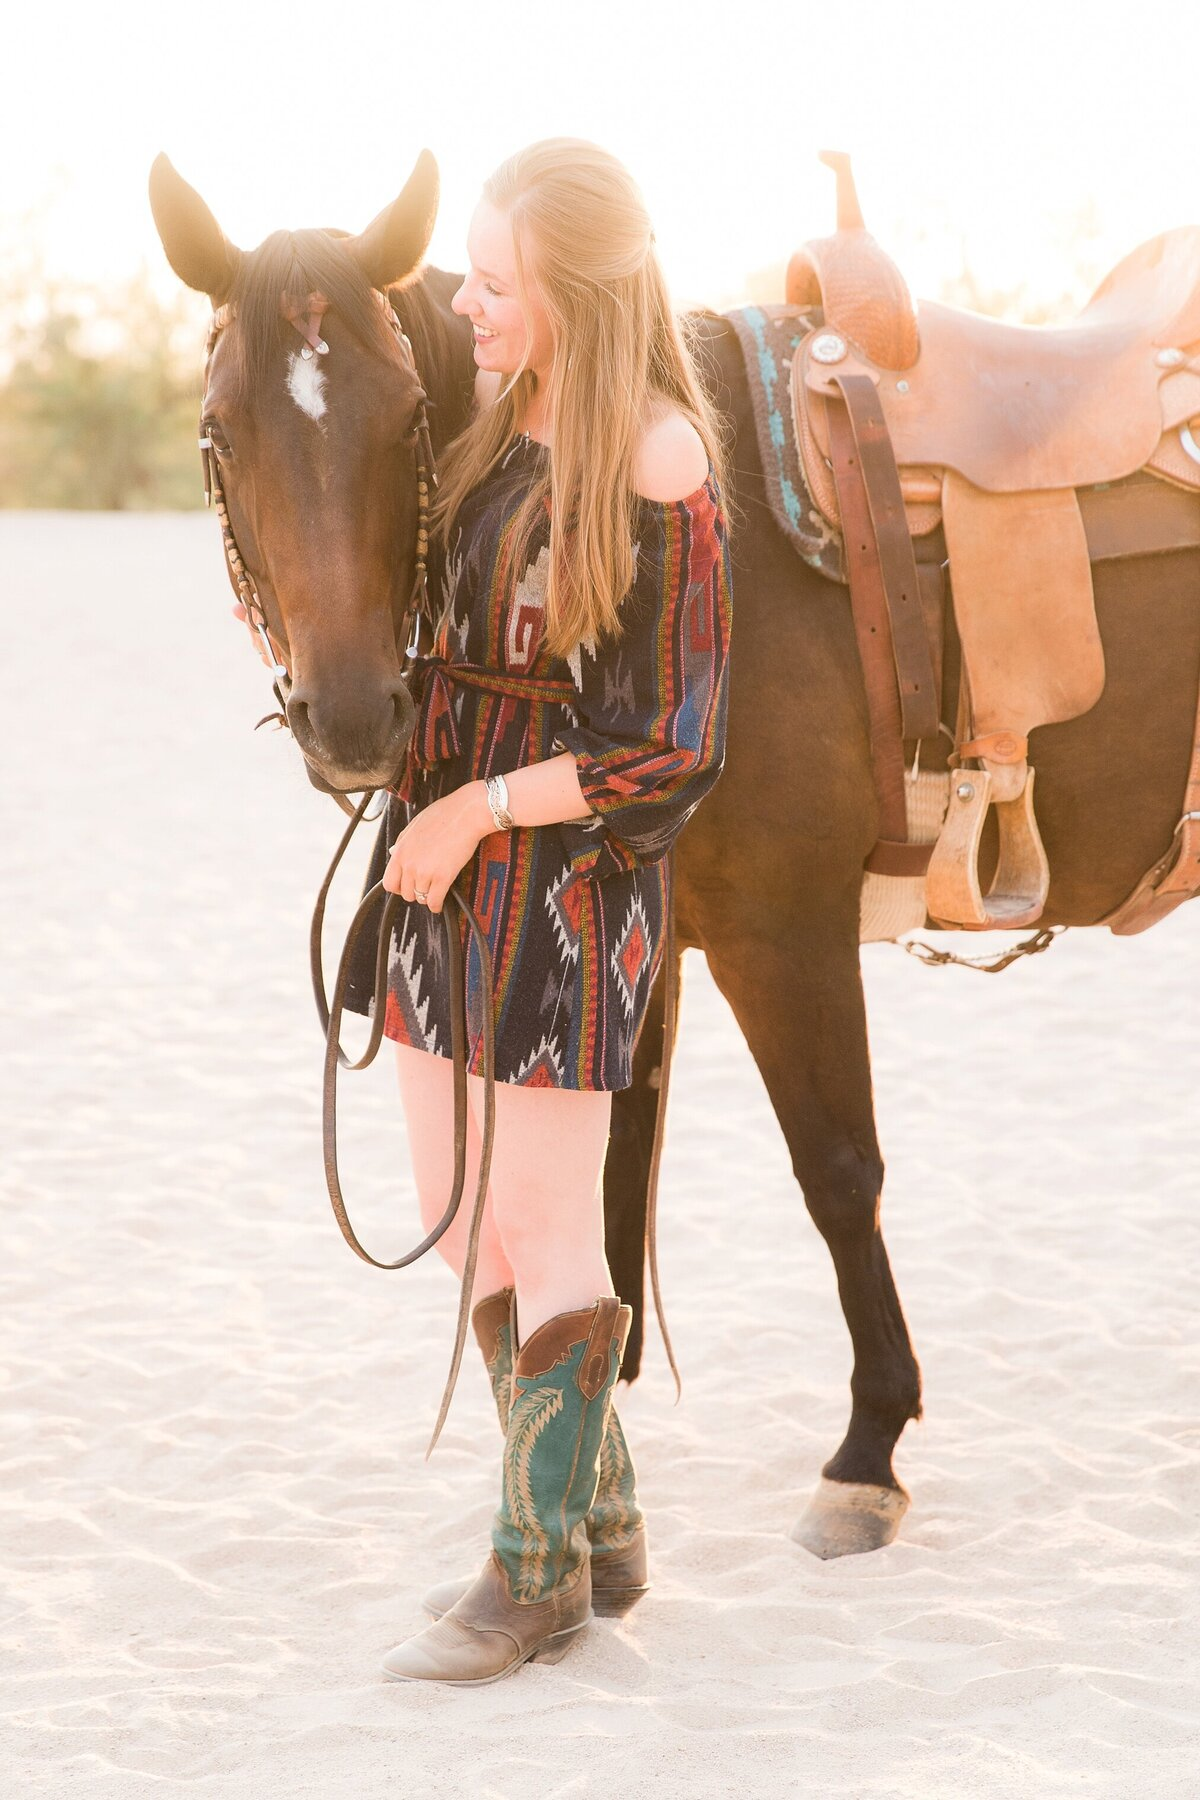 full length portrait of a girl standing next to her horse while the horse is looking at the camera and she's looking at the horse